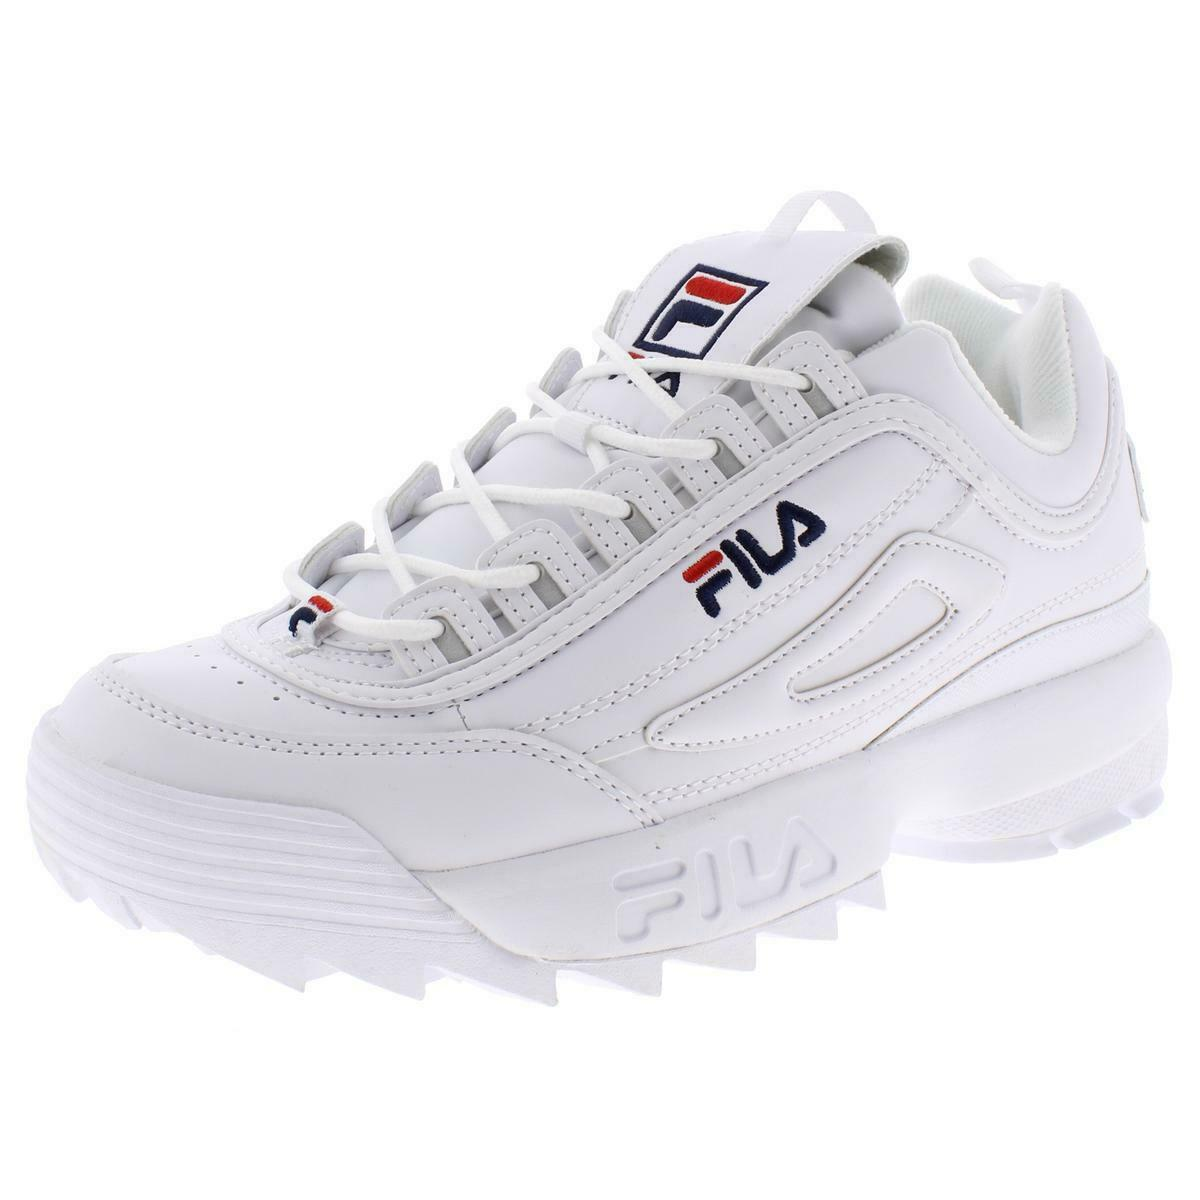 Fila Disruptor II 2 White Navy Red Mens Sneakers Shoes FW01655-111 Sizes